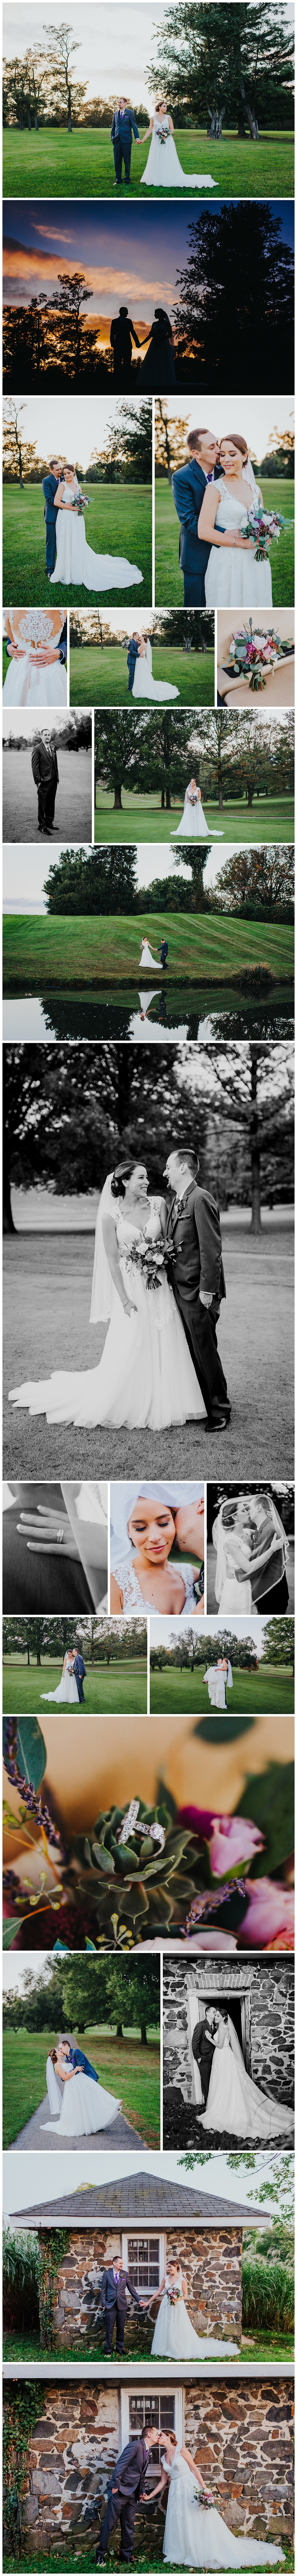 Sunset portraits with the bride and groom at Rolling Roads Golf Course, Baltimore Wedding Venue